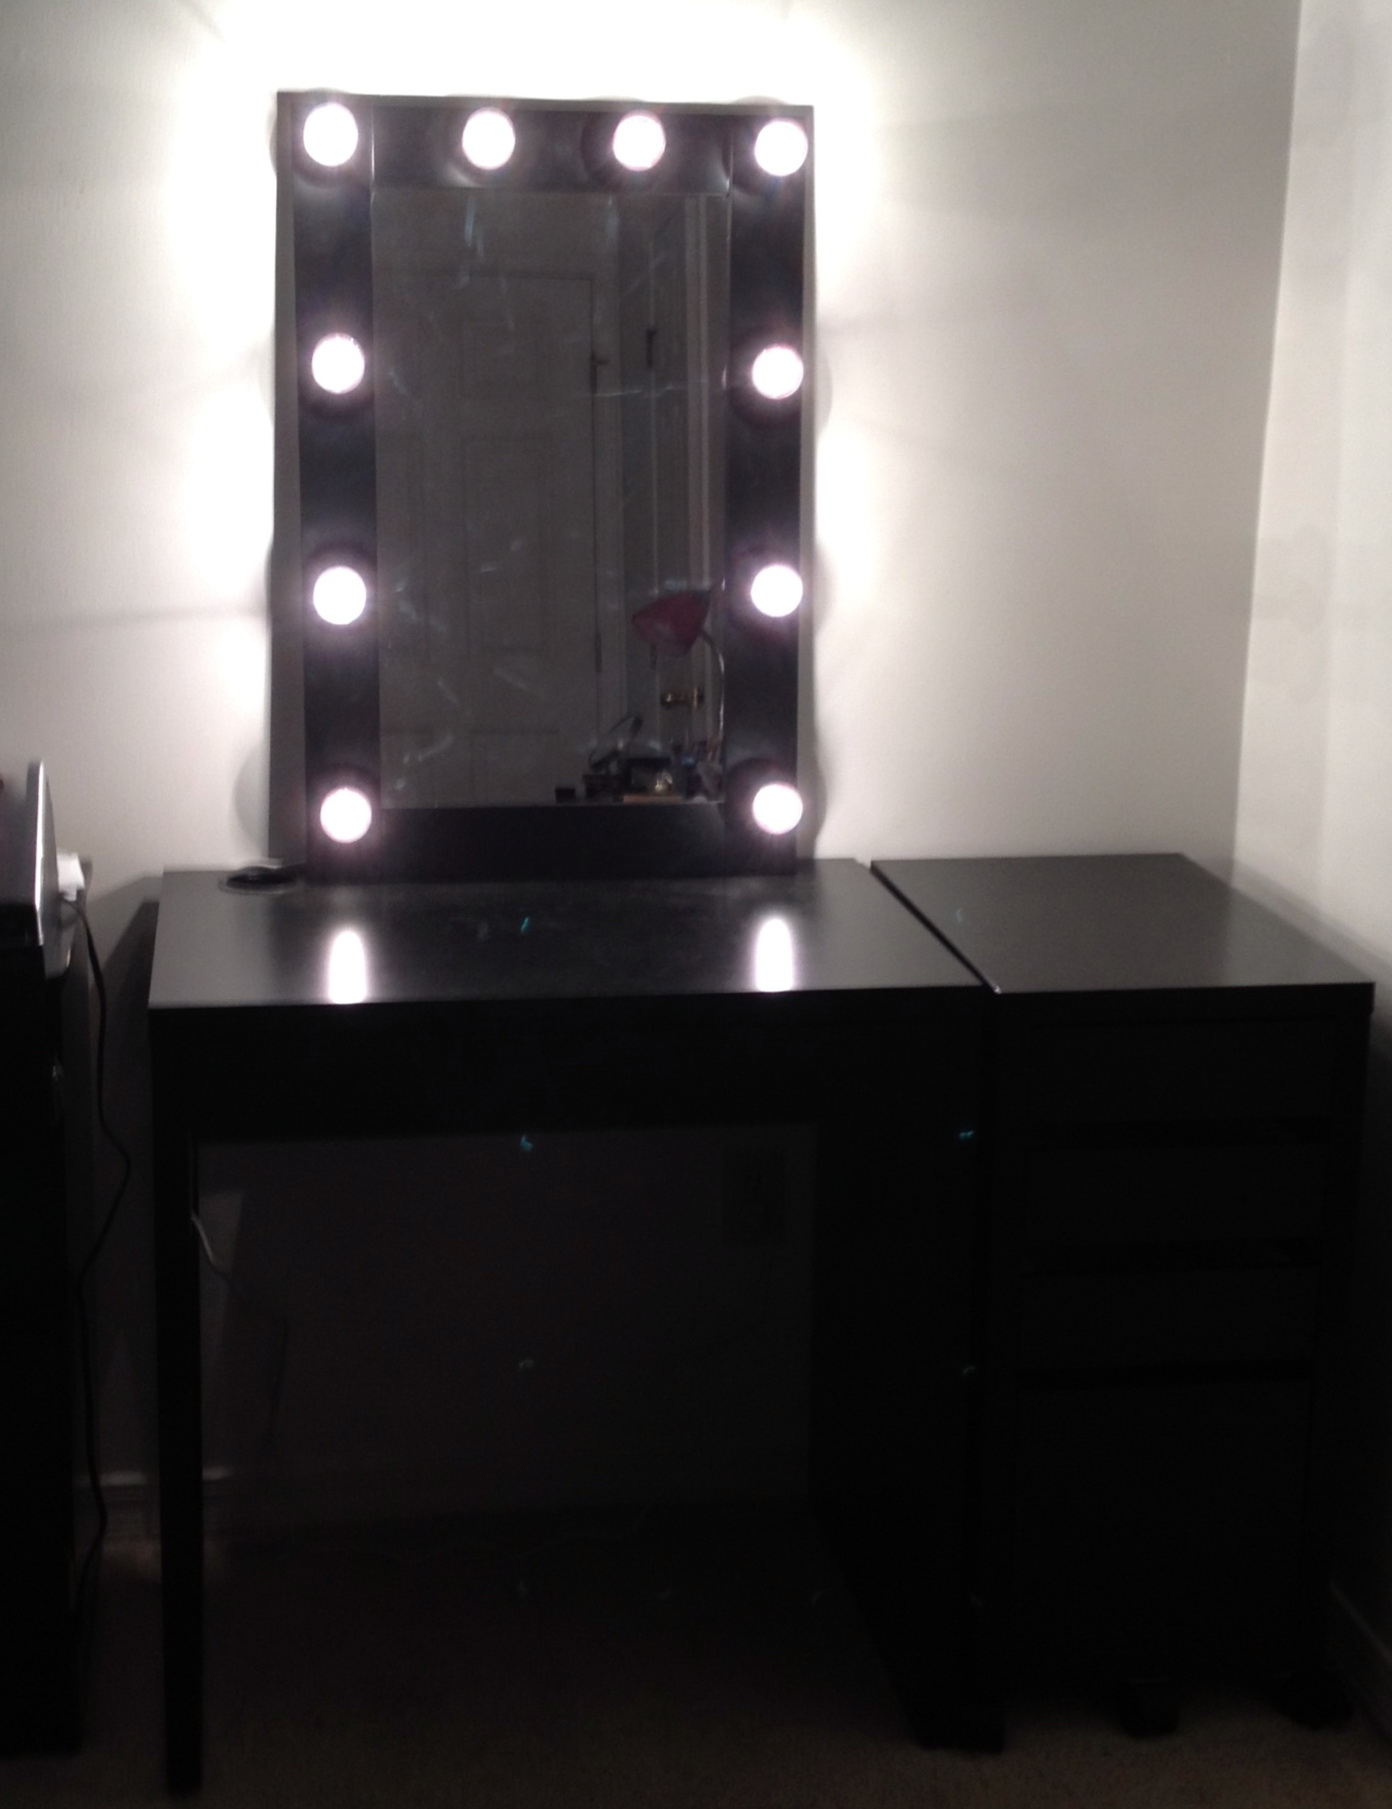 diy light up vanity mirror home design ideas. Black Bedroom Furniture Sets. Home Design Ideas